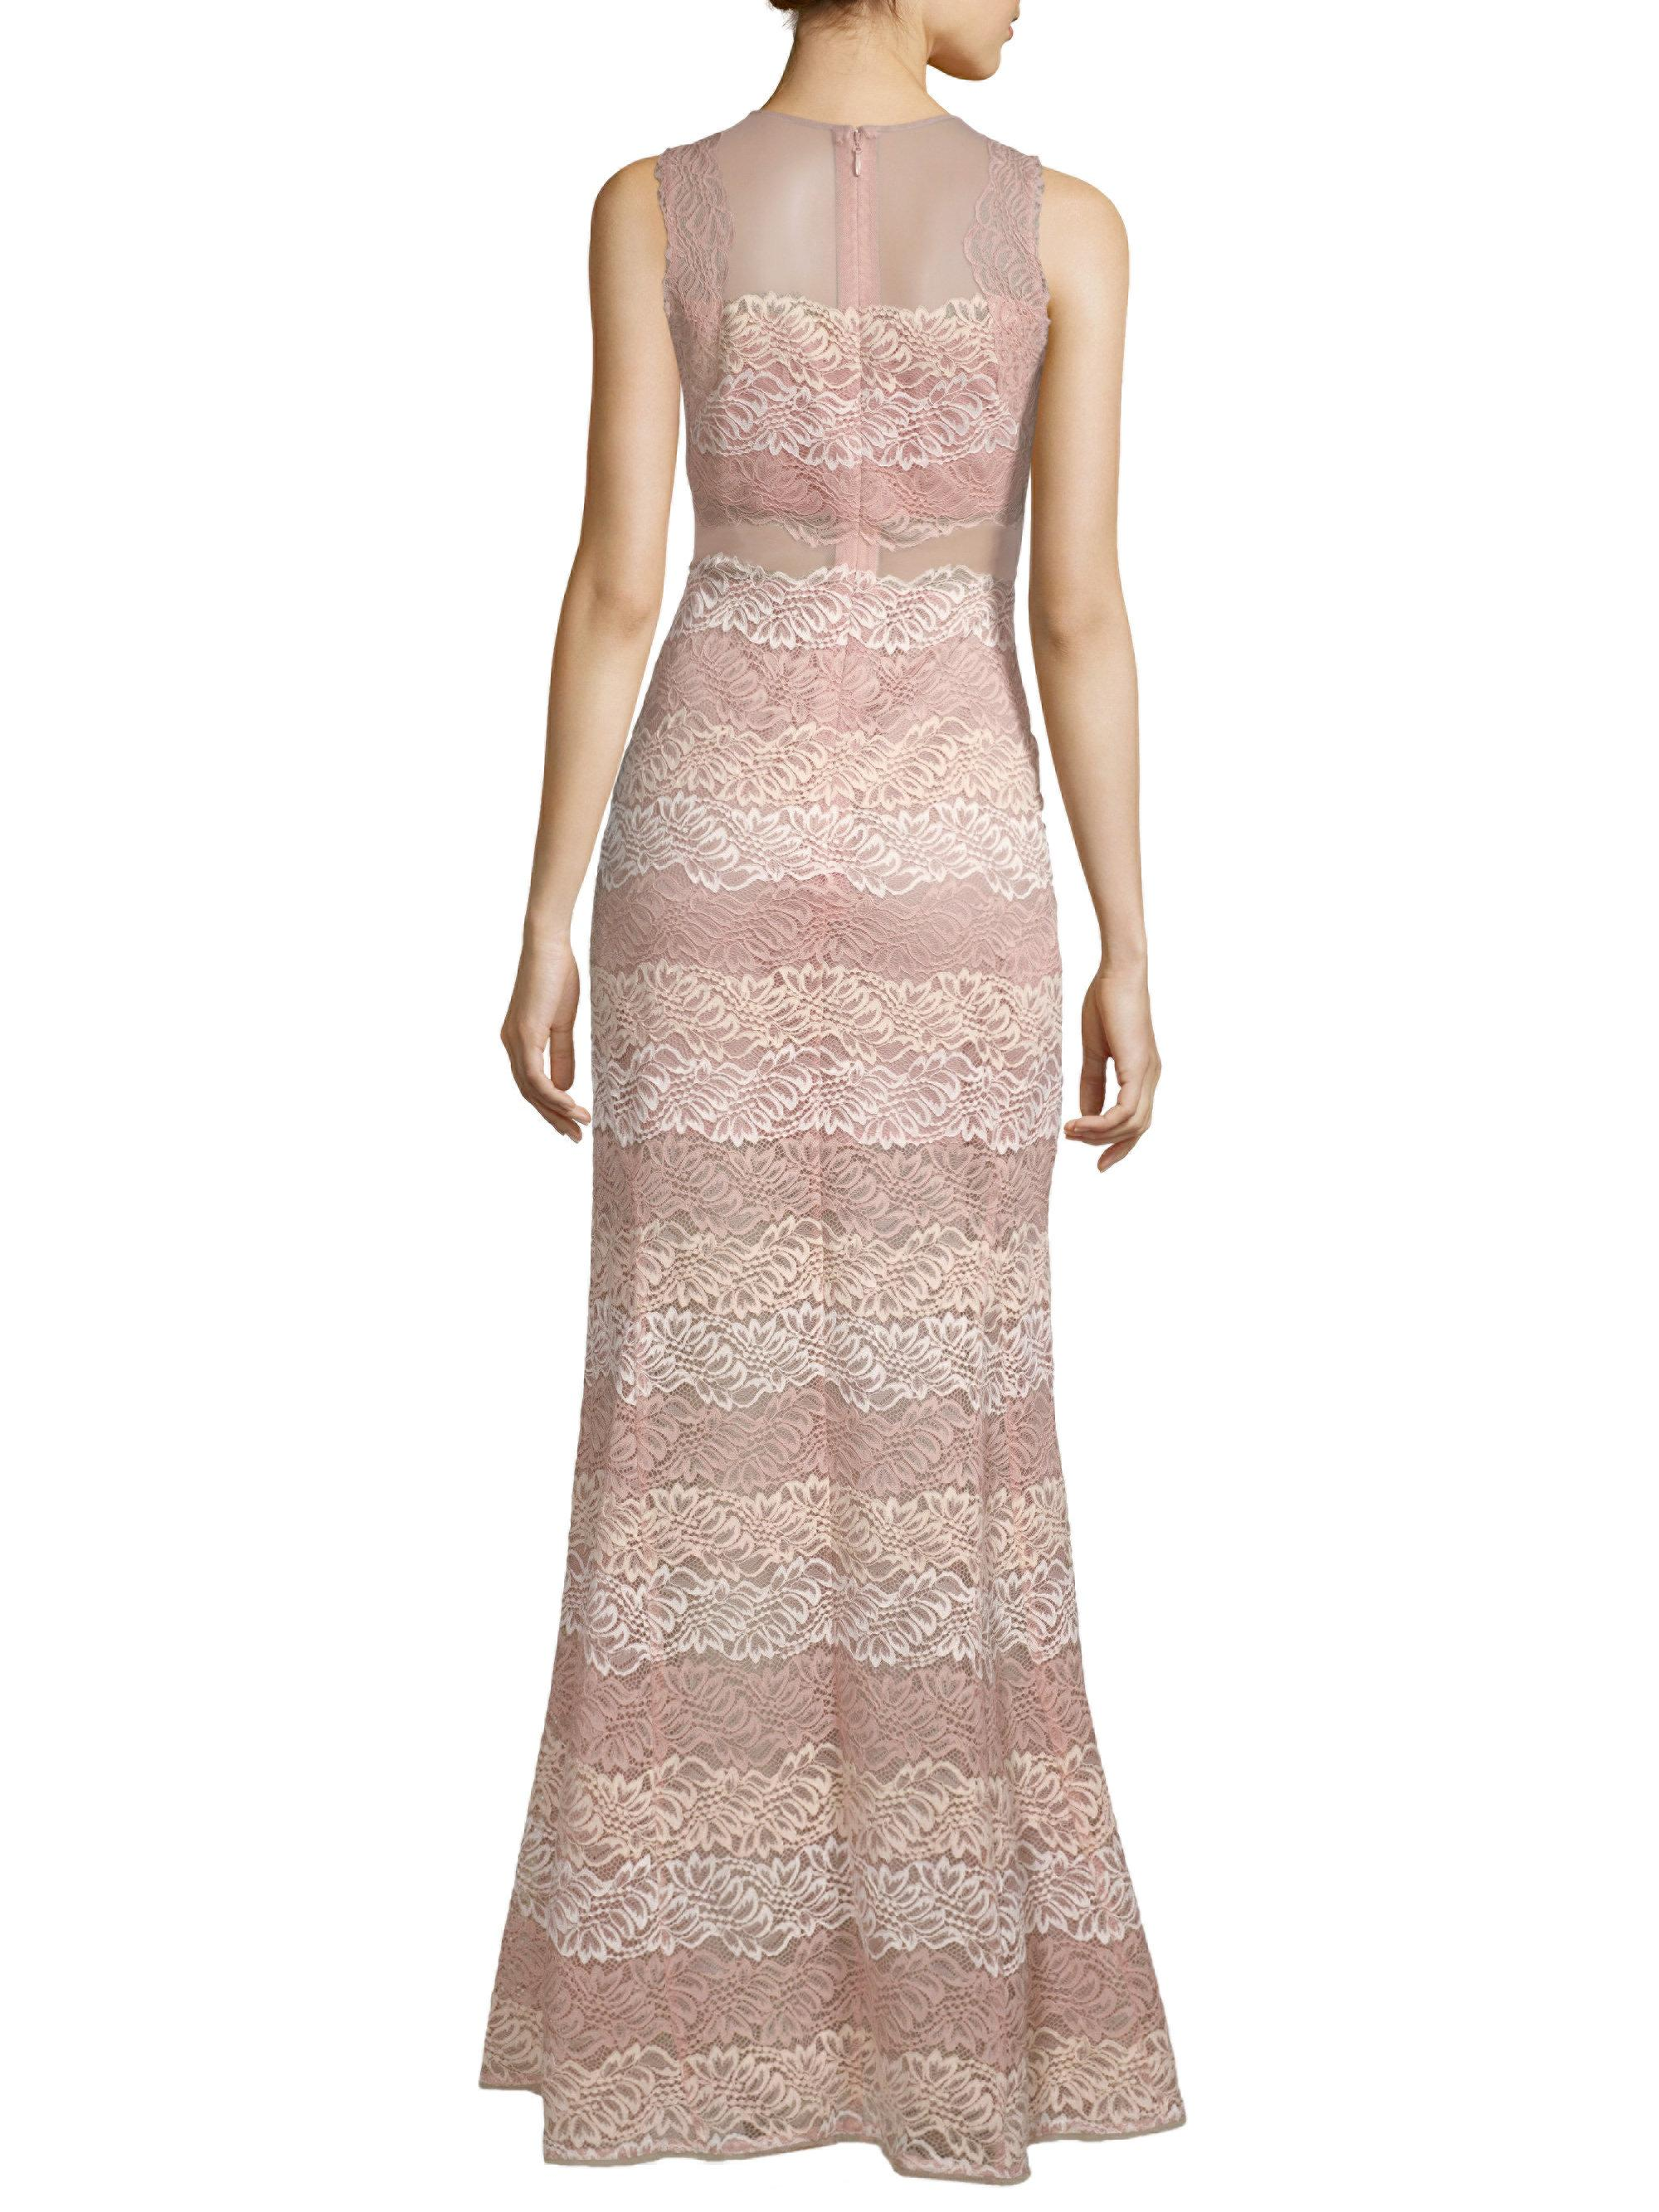 4789bf1a003b Lyst - BCBGMAXAZRIA Striped Lace Trumpet Gown in Pink